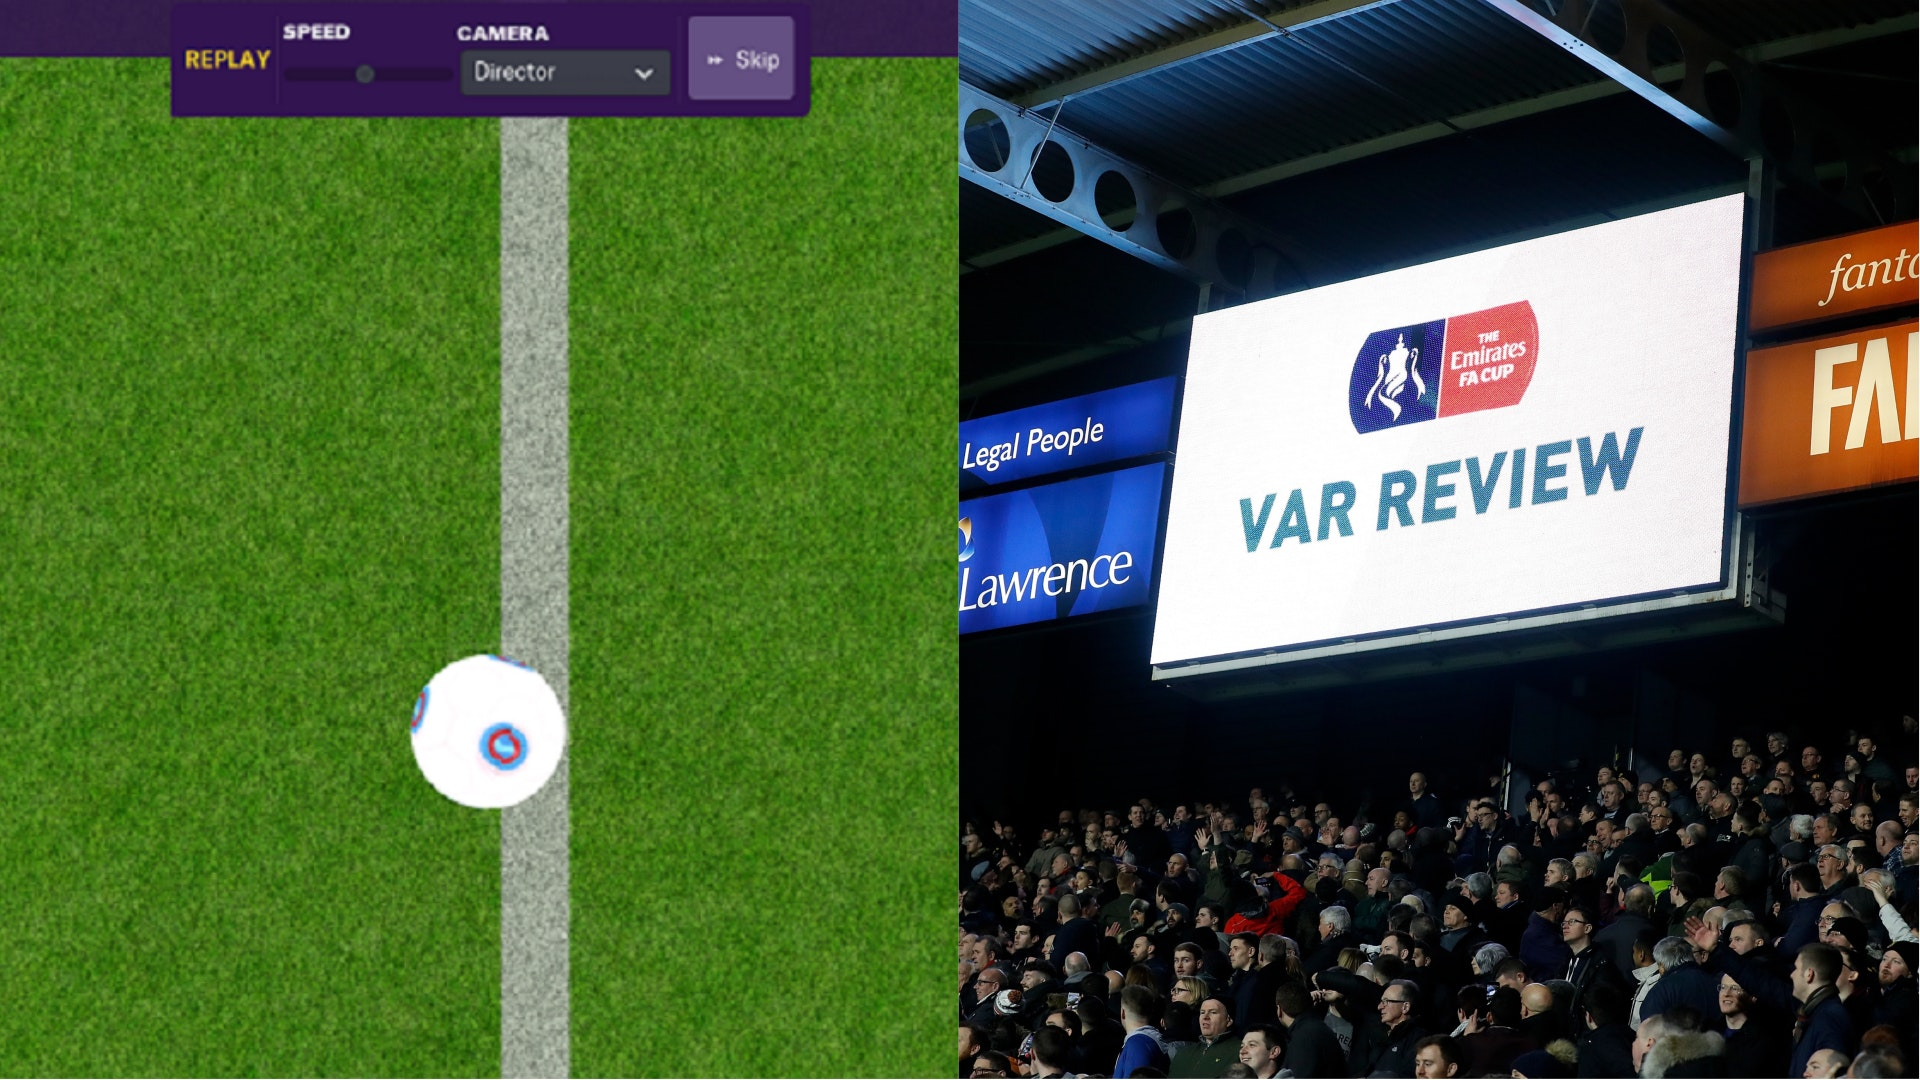 football manager technology var features included many bt sports announced host including which